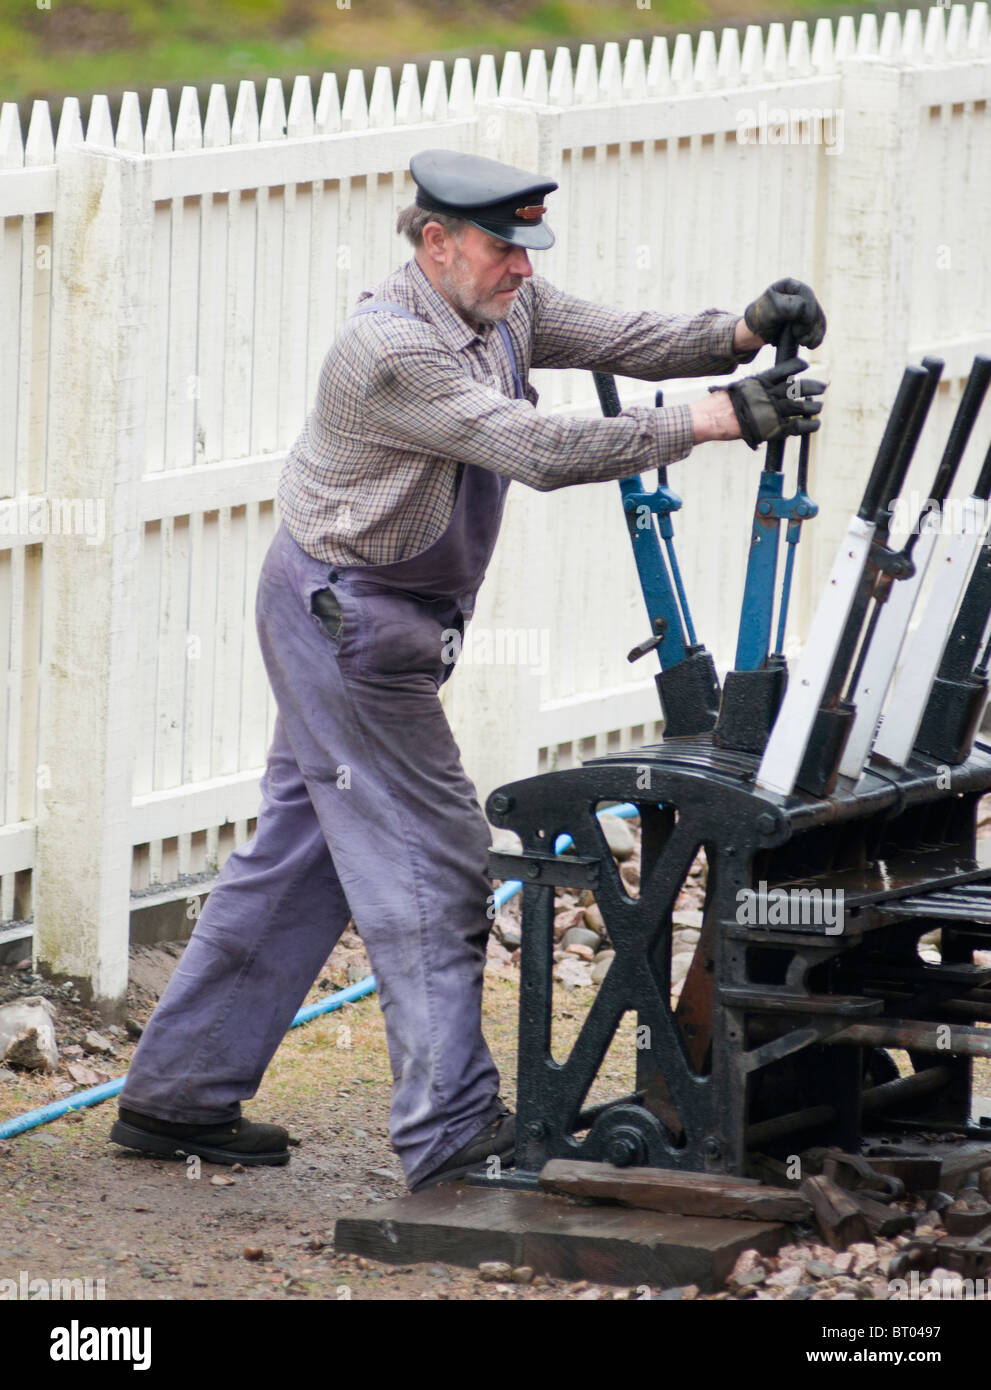 Signalman pulling levers for the historic steam train Number 828 at Aviemore, Scotland. - Stock Image